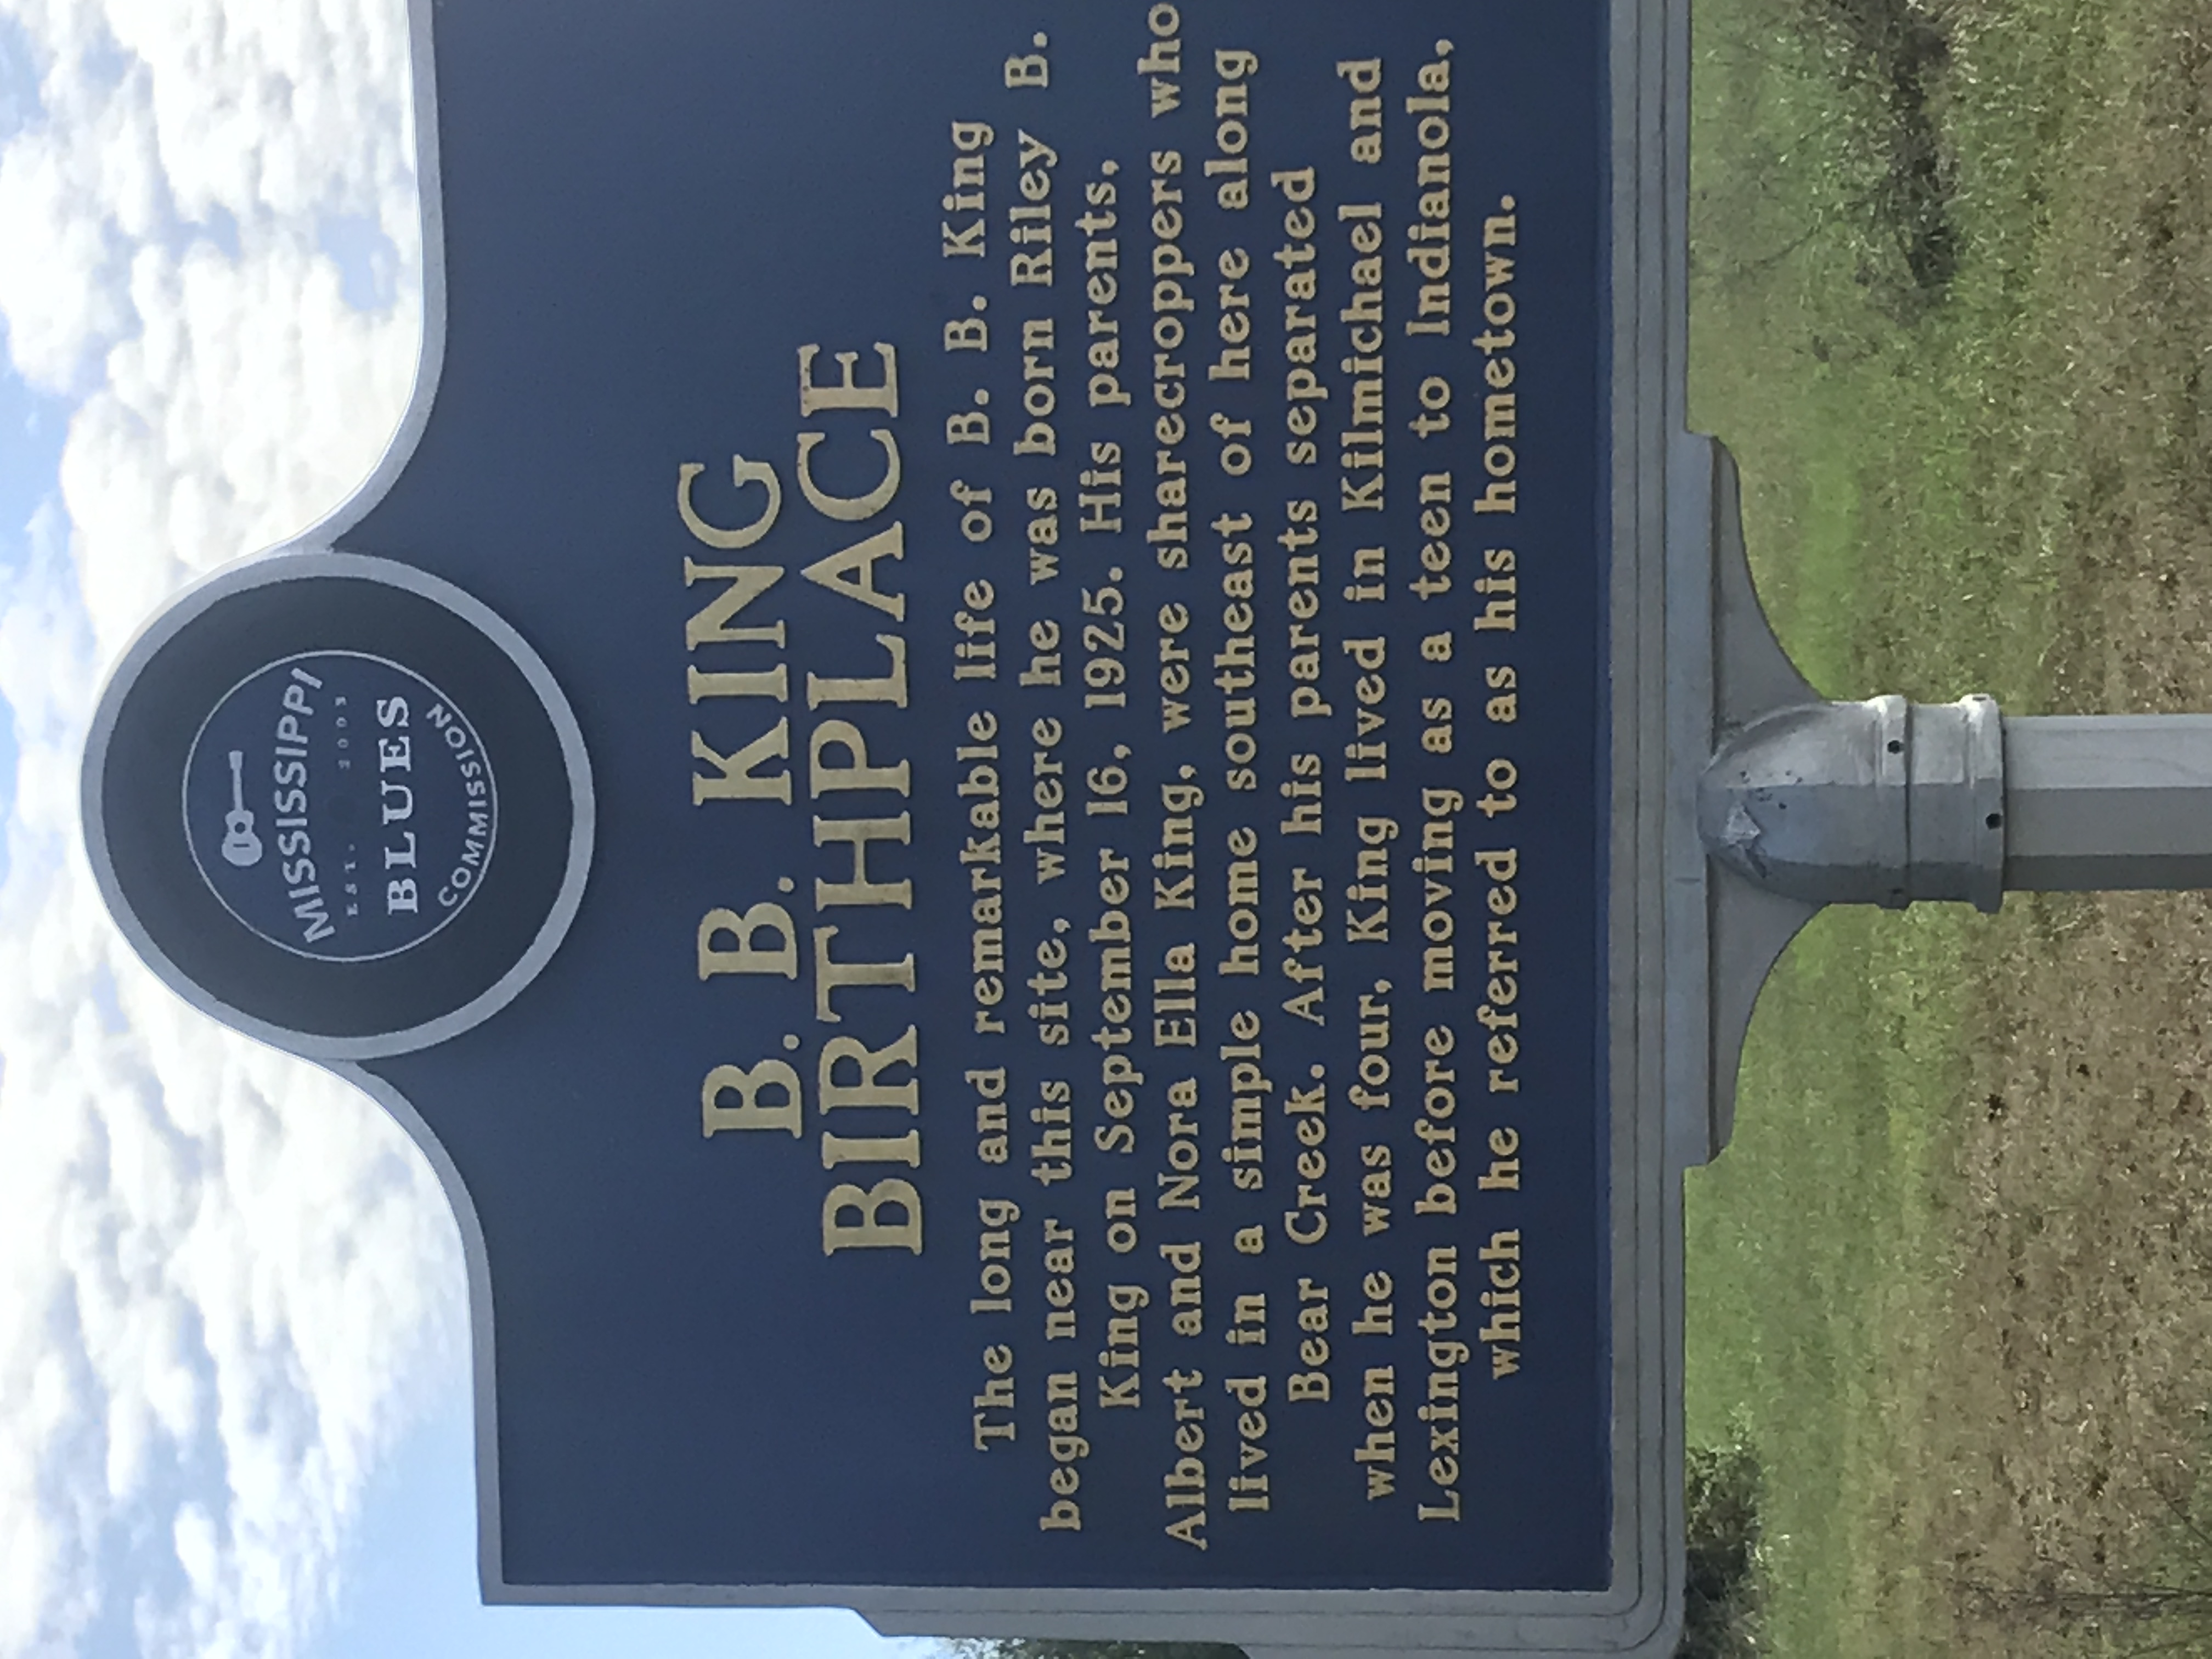 """Mississippi Blues Trail Marker """"A half mile southeast"""" of the cabin B.B King was born."""